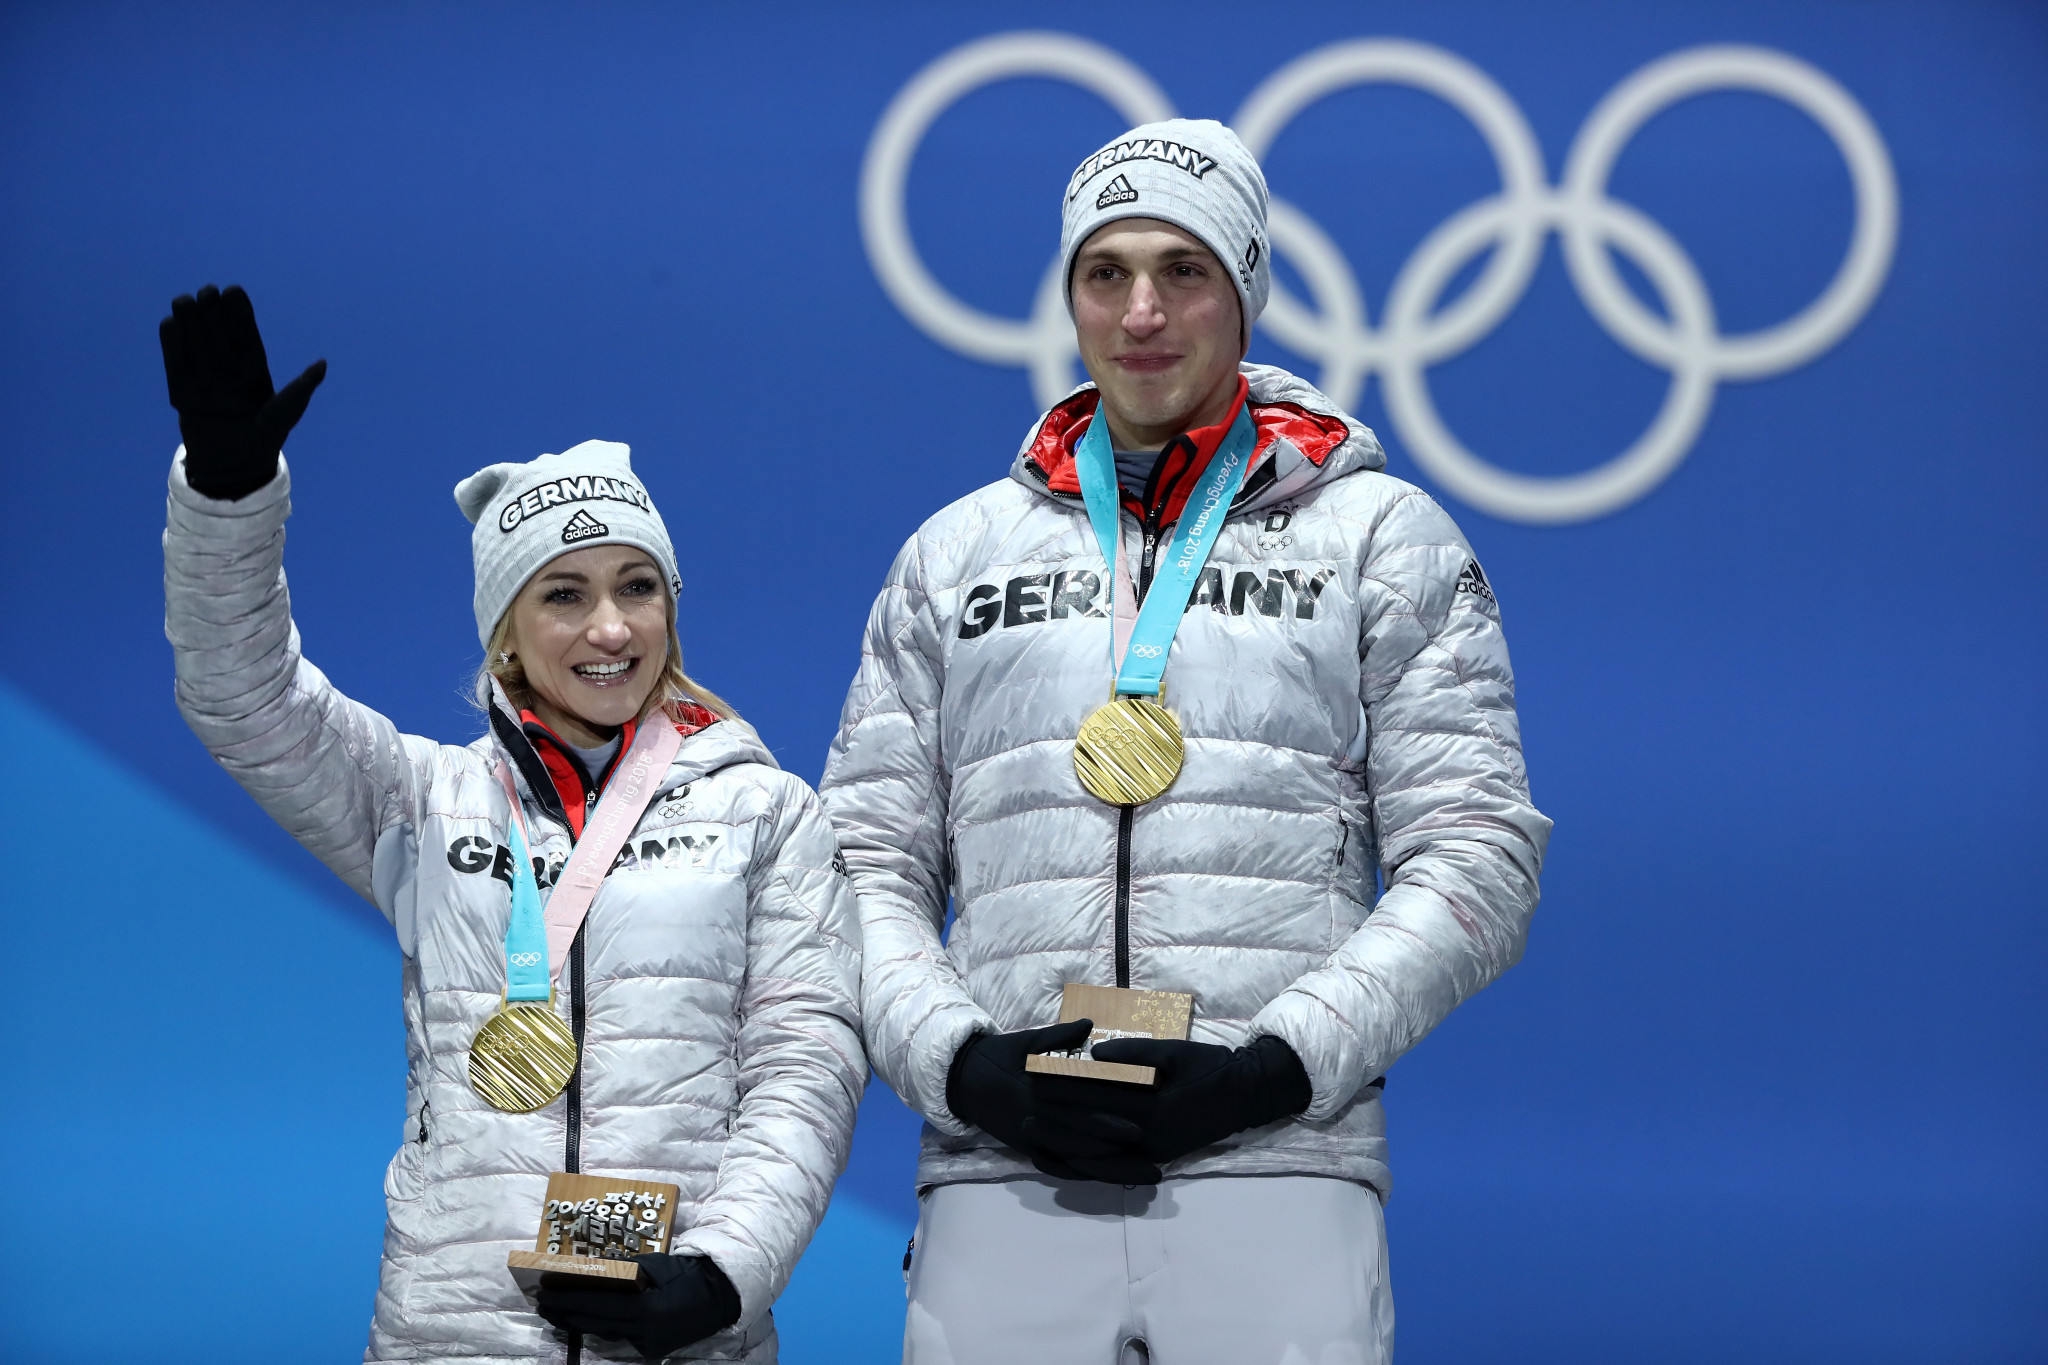 Aliona Savchenko, left, celebrates gold alongside Bruno Massot at Pyeongchang 2018 ©Getty Images